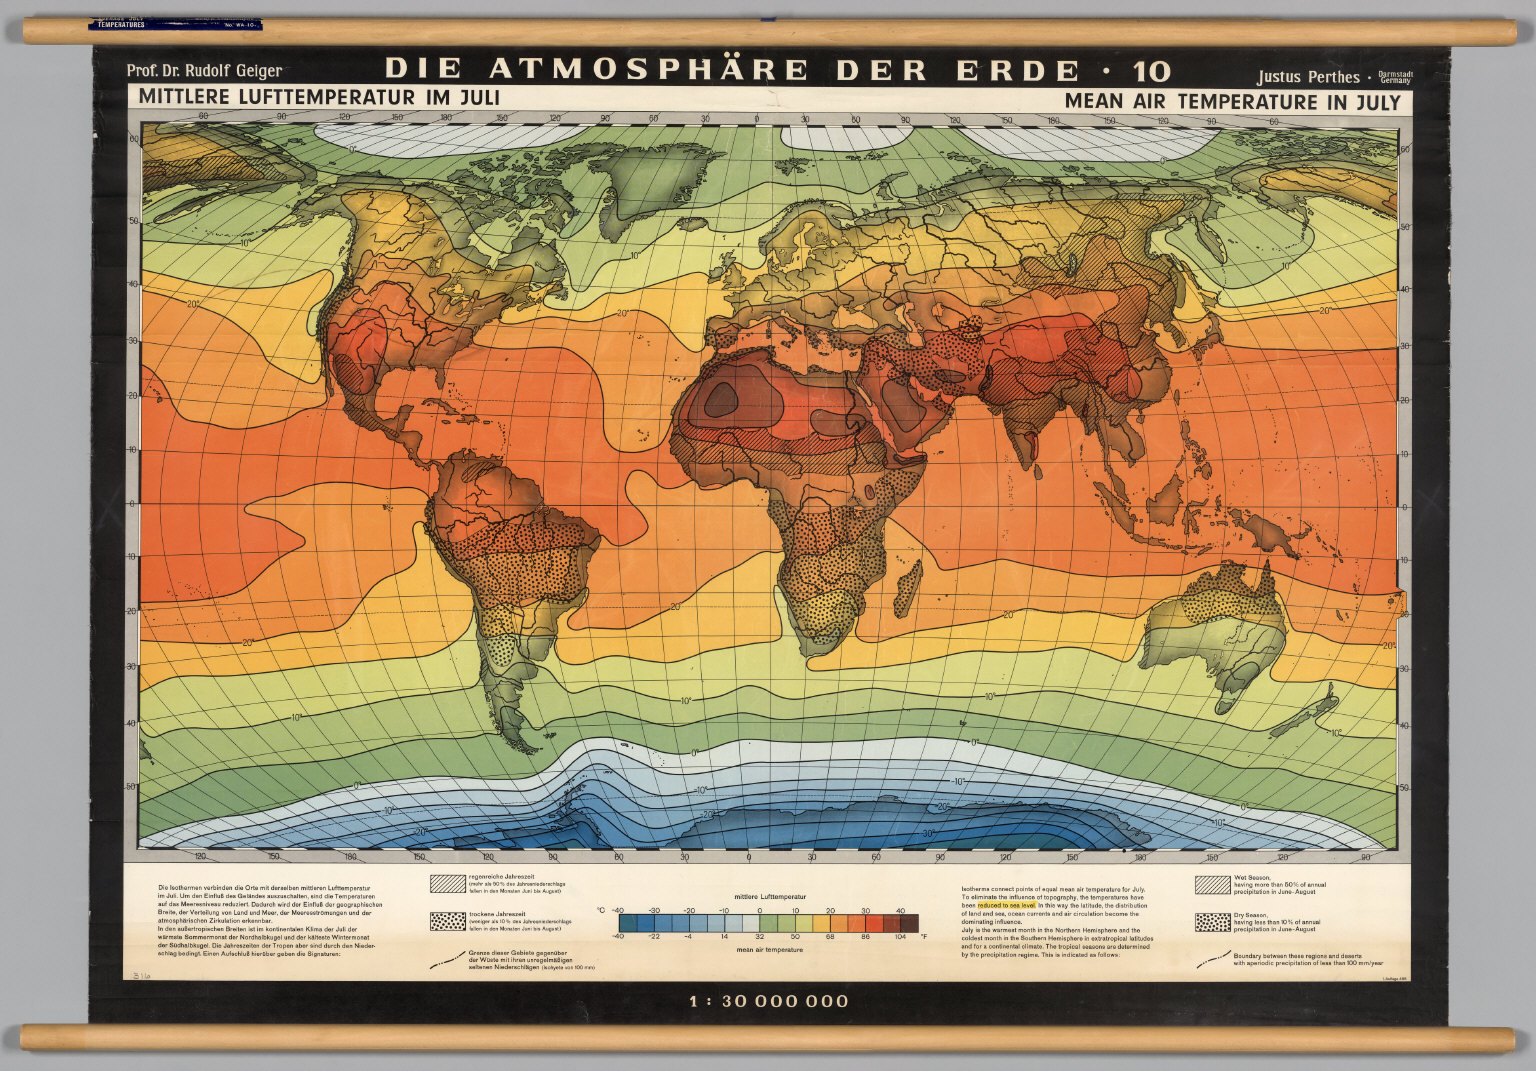 World atmosphere average july temperature david rumsey world atmosphere average july temperature freerunsca Images